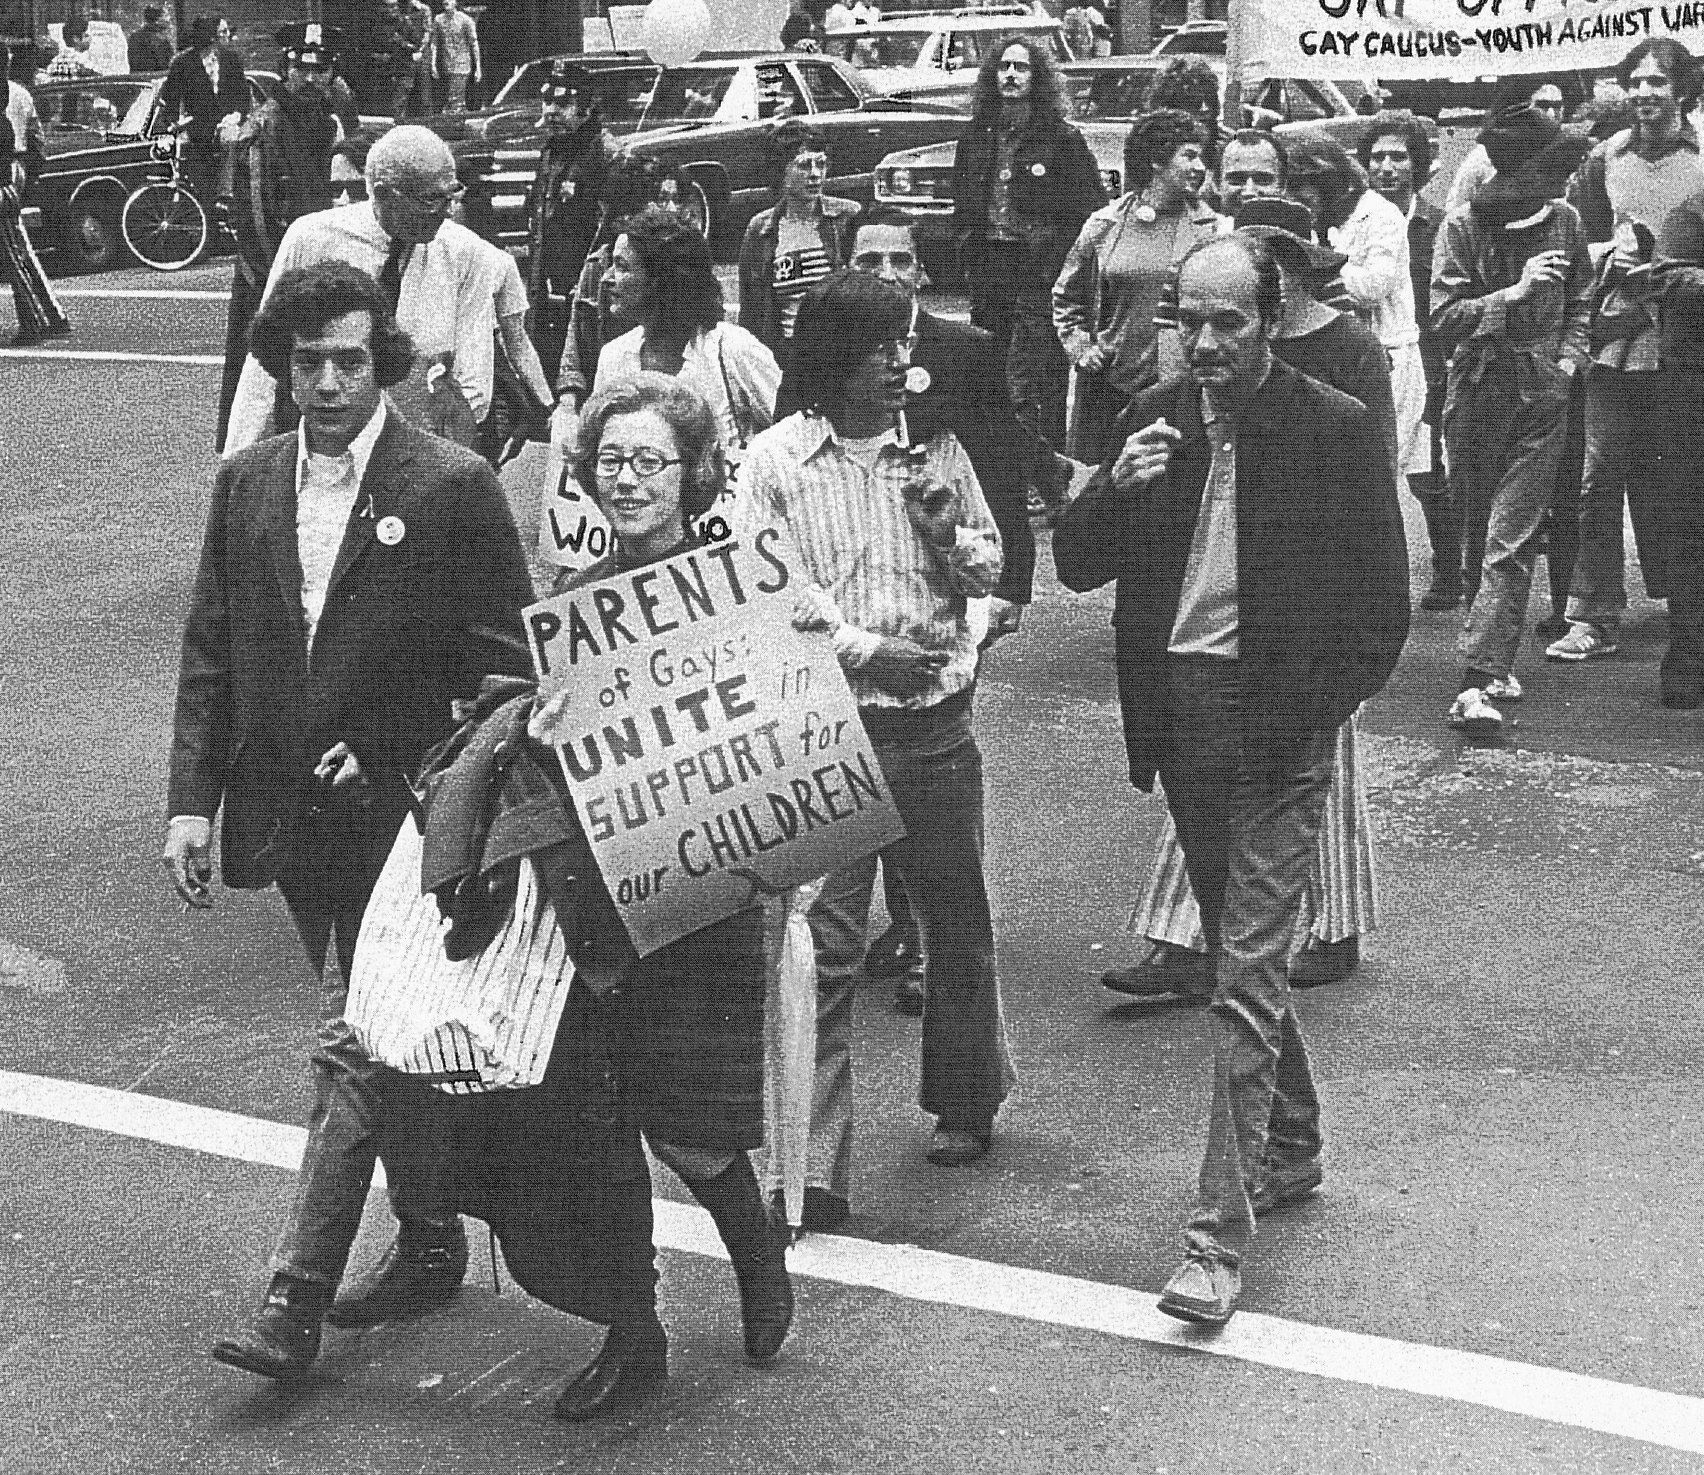 The moment that started it all: Jeanne Manford marches with son Morty Manford at the 1972 Christopher Street Liberation Day M